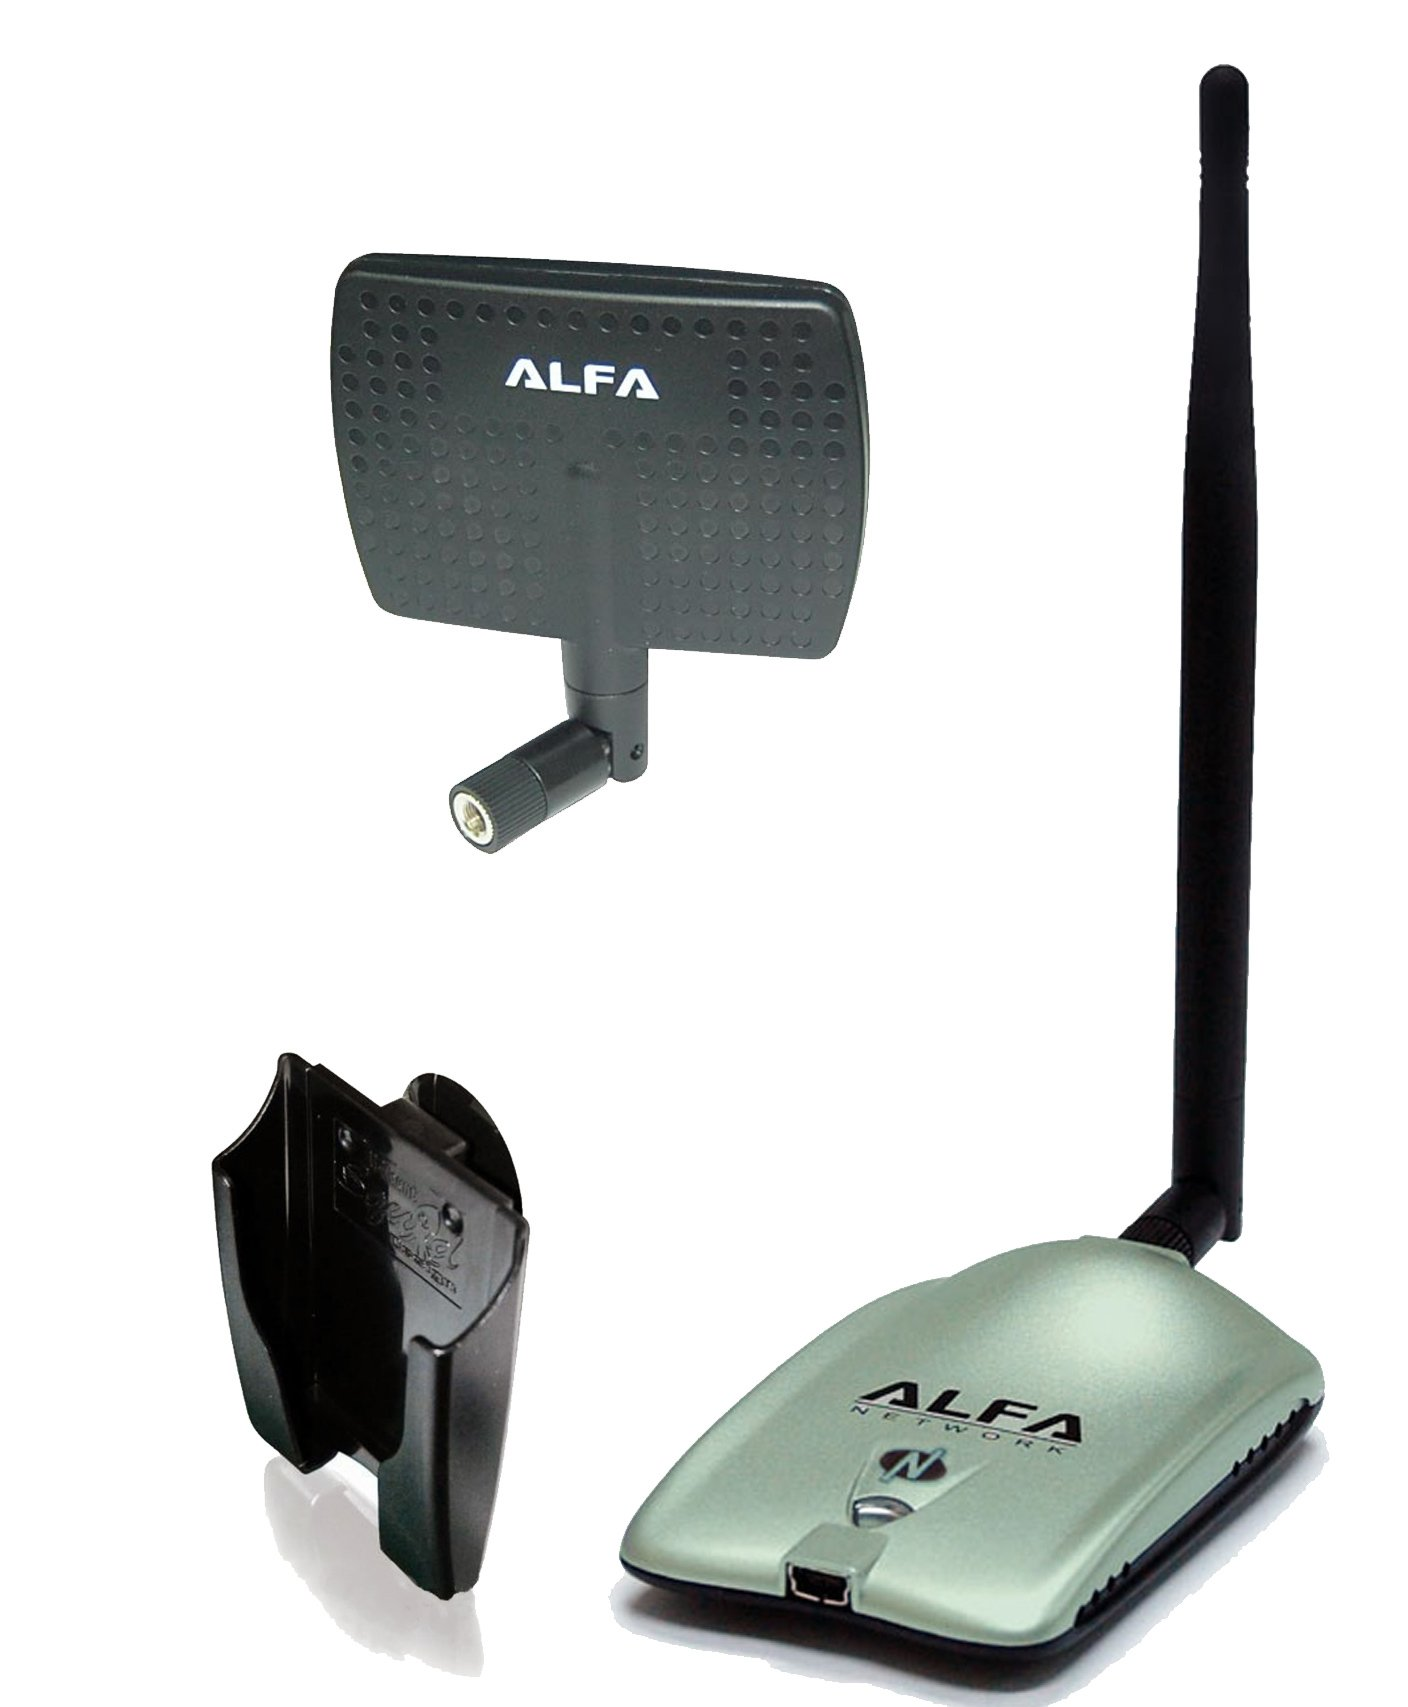 Alfa AWUS036NH 2000mW 2W 802.11g/n High Gain USB Wireless G/N Long-Range WiFi Network Adapter with 5dBi Screw-On Swivel Rubber Antenna and 7dBi Panel Antenna and Suction Cup/Clip Window Mount by Alfa